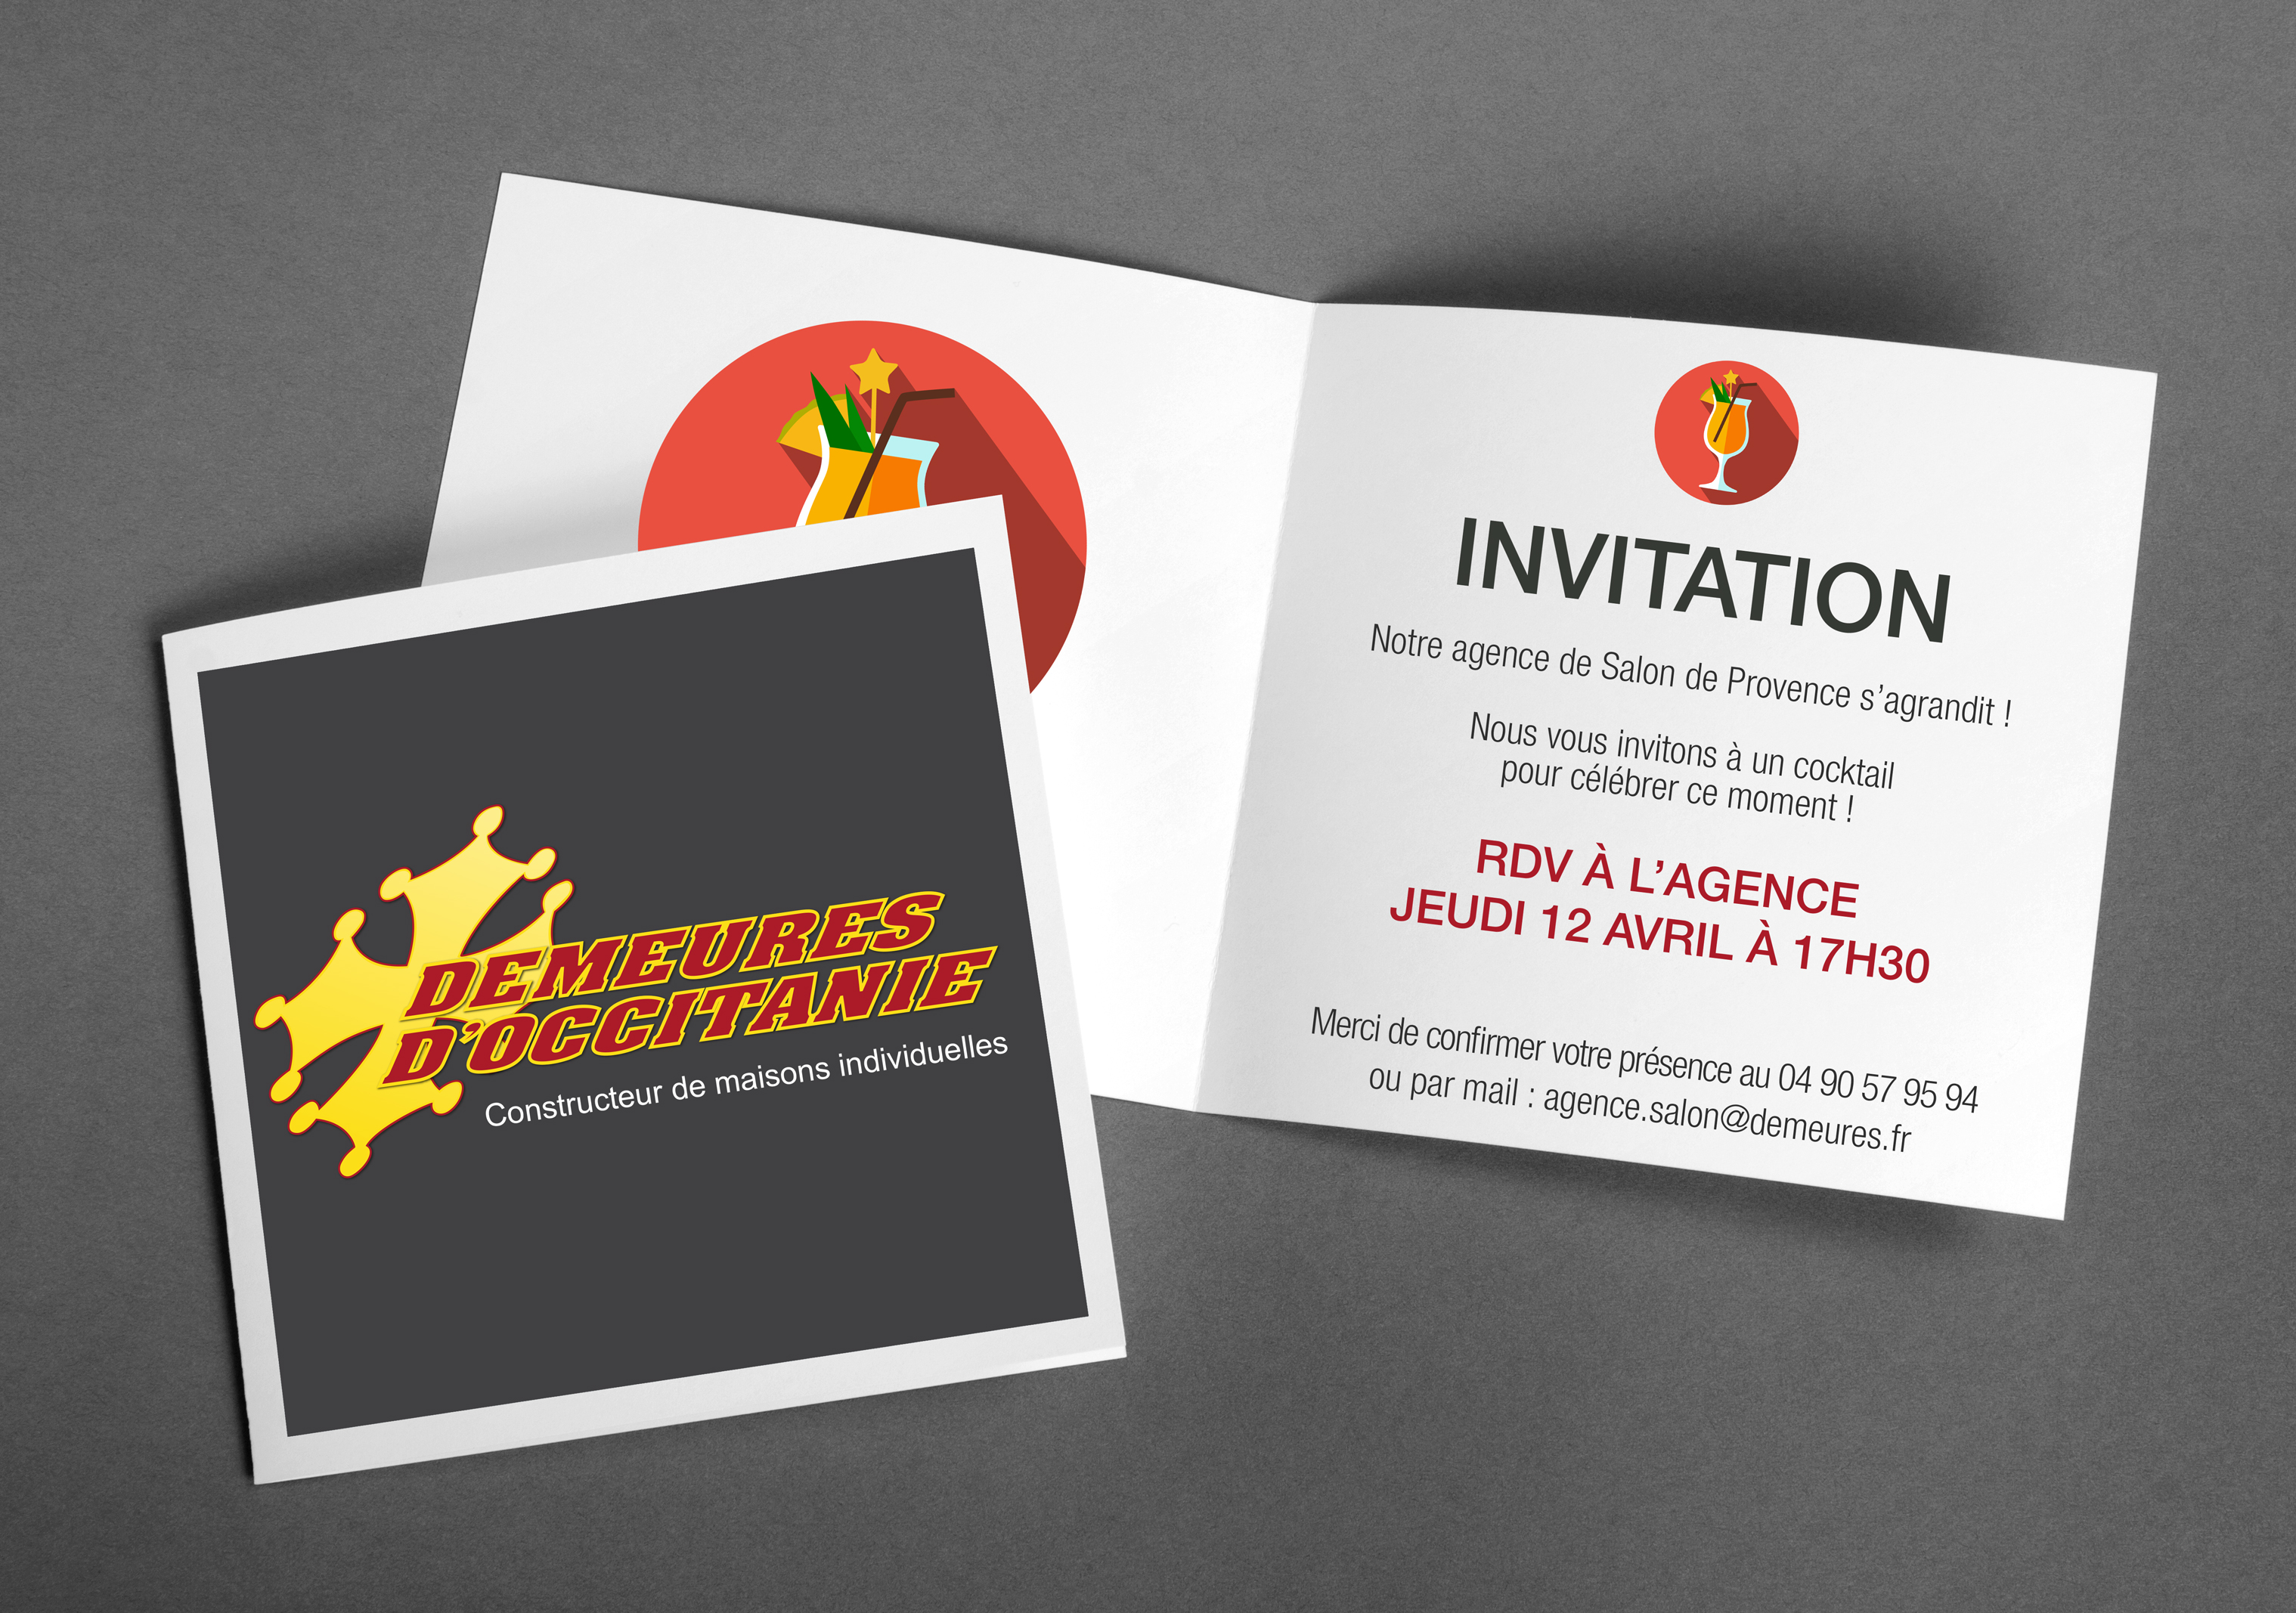 Invitation cocktail Agence de Salon de Provence